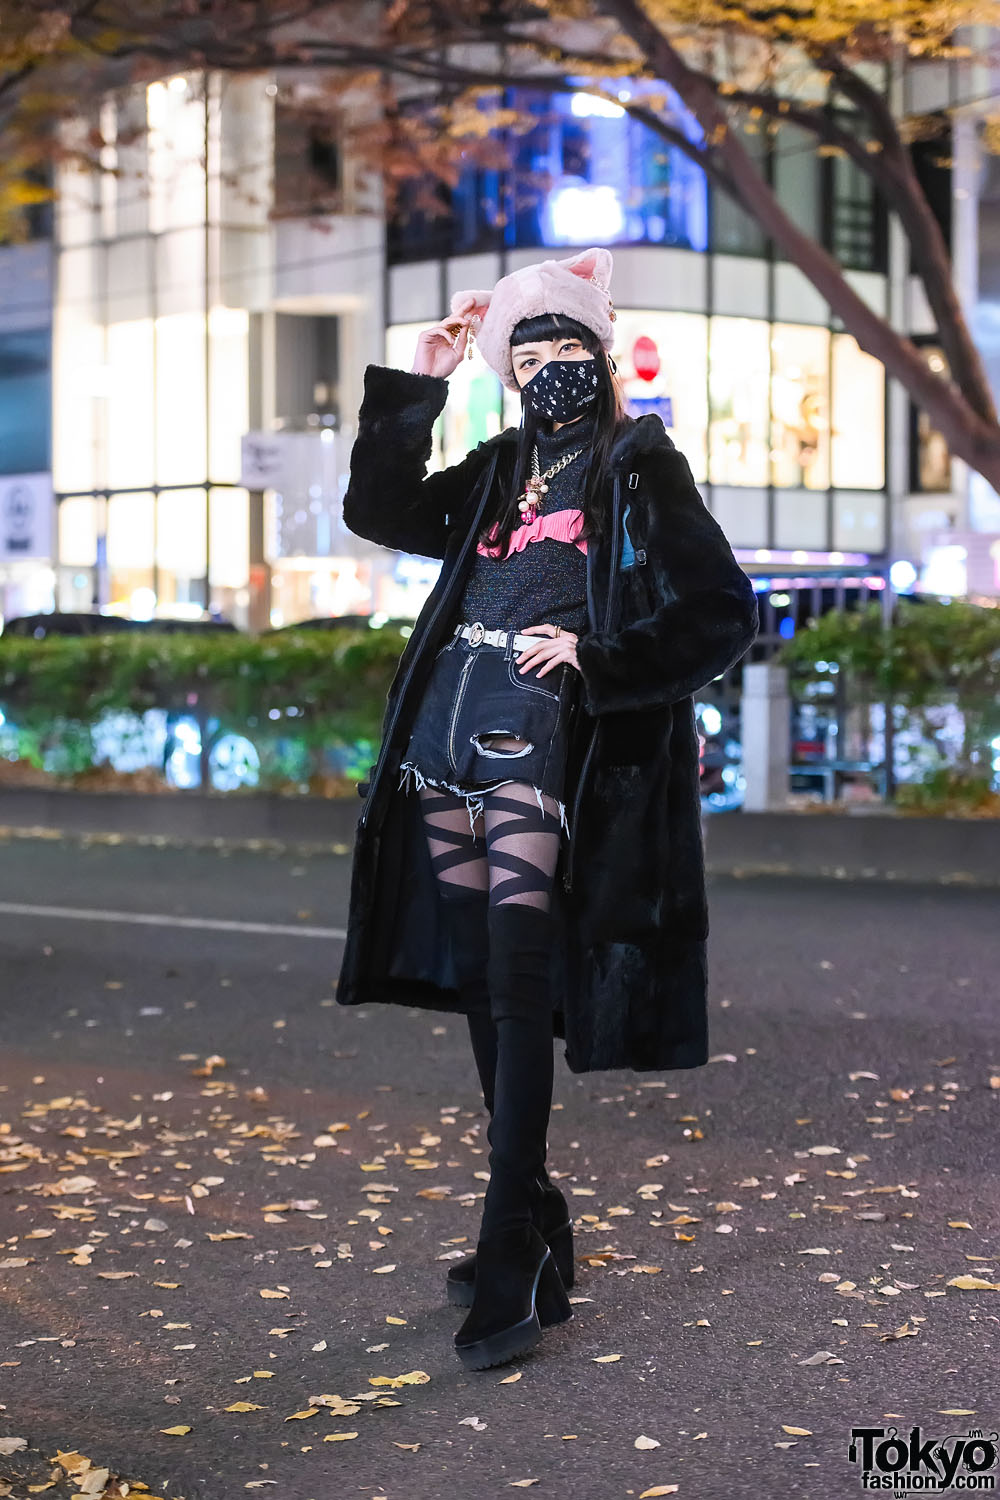 Japanese Student In Fuzzy Cat Ear Hat w/ Comme Ca Du Mode Coat, Lily Brown Mock Neck, Spiral Girl Denim Shorts, Vivienne Westwood Belt, Louis Vuitton Scarf, Gucci, Milk Accessories & Mouse Thigh-High Boots